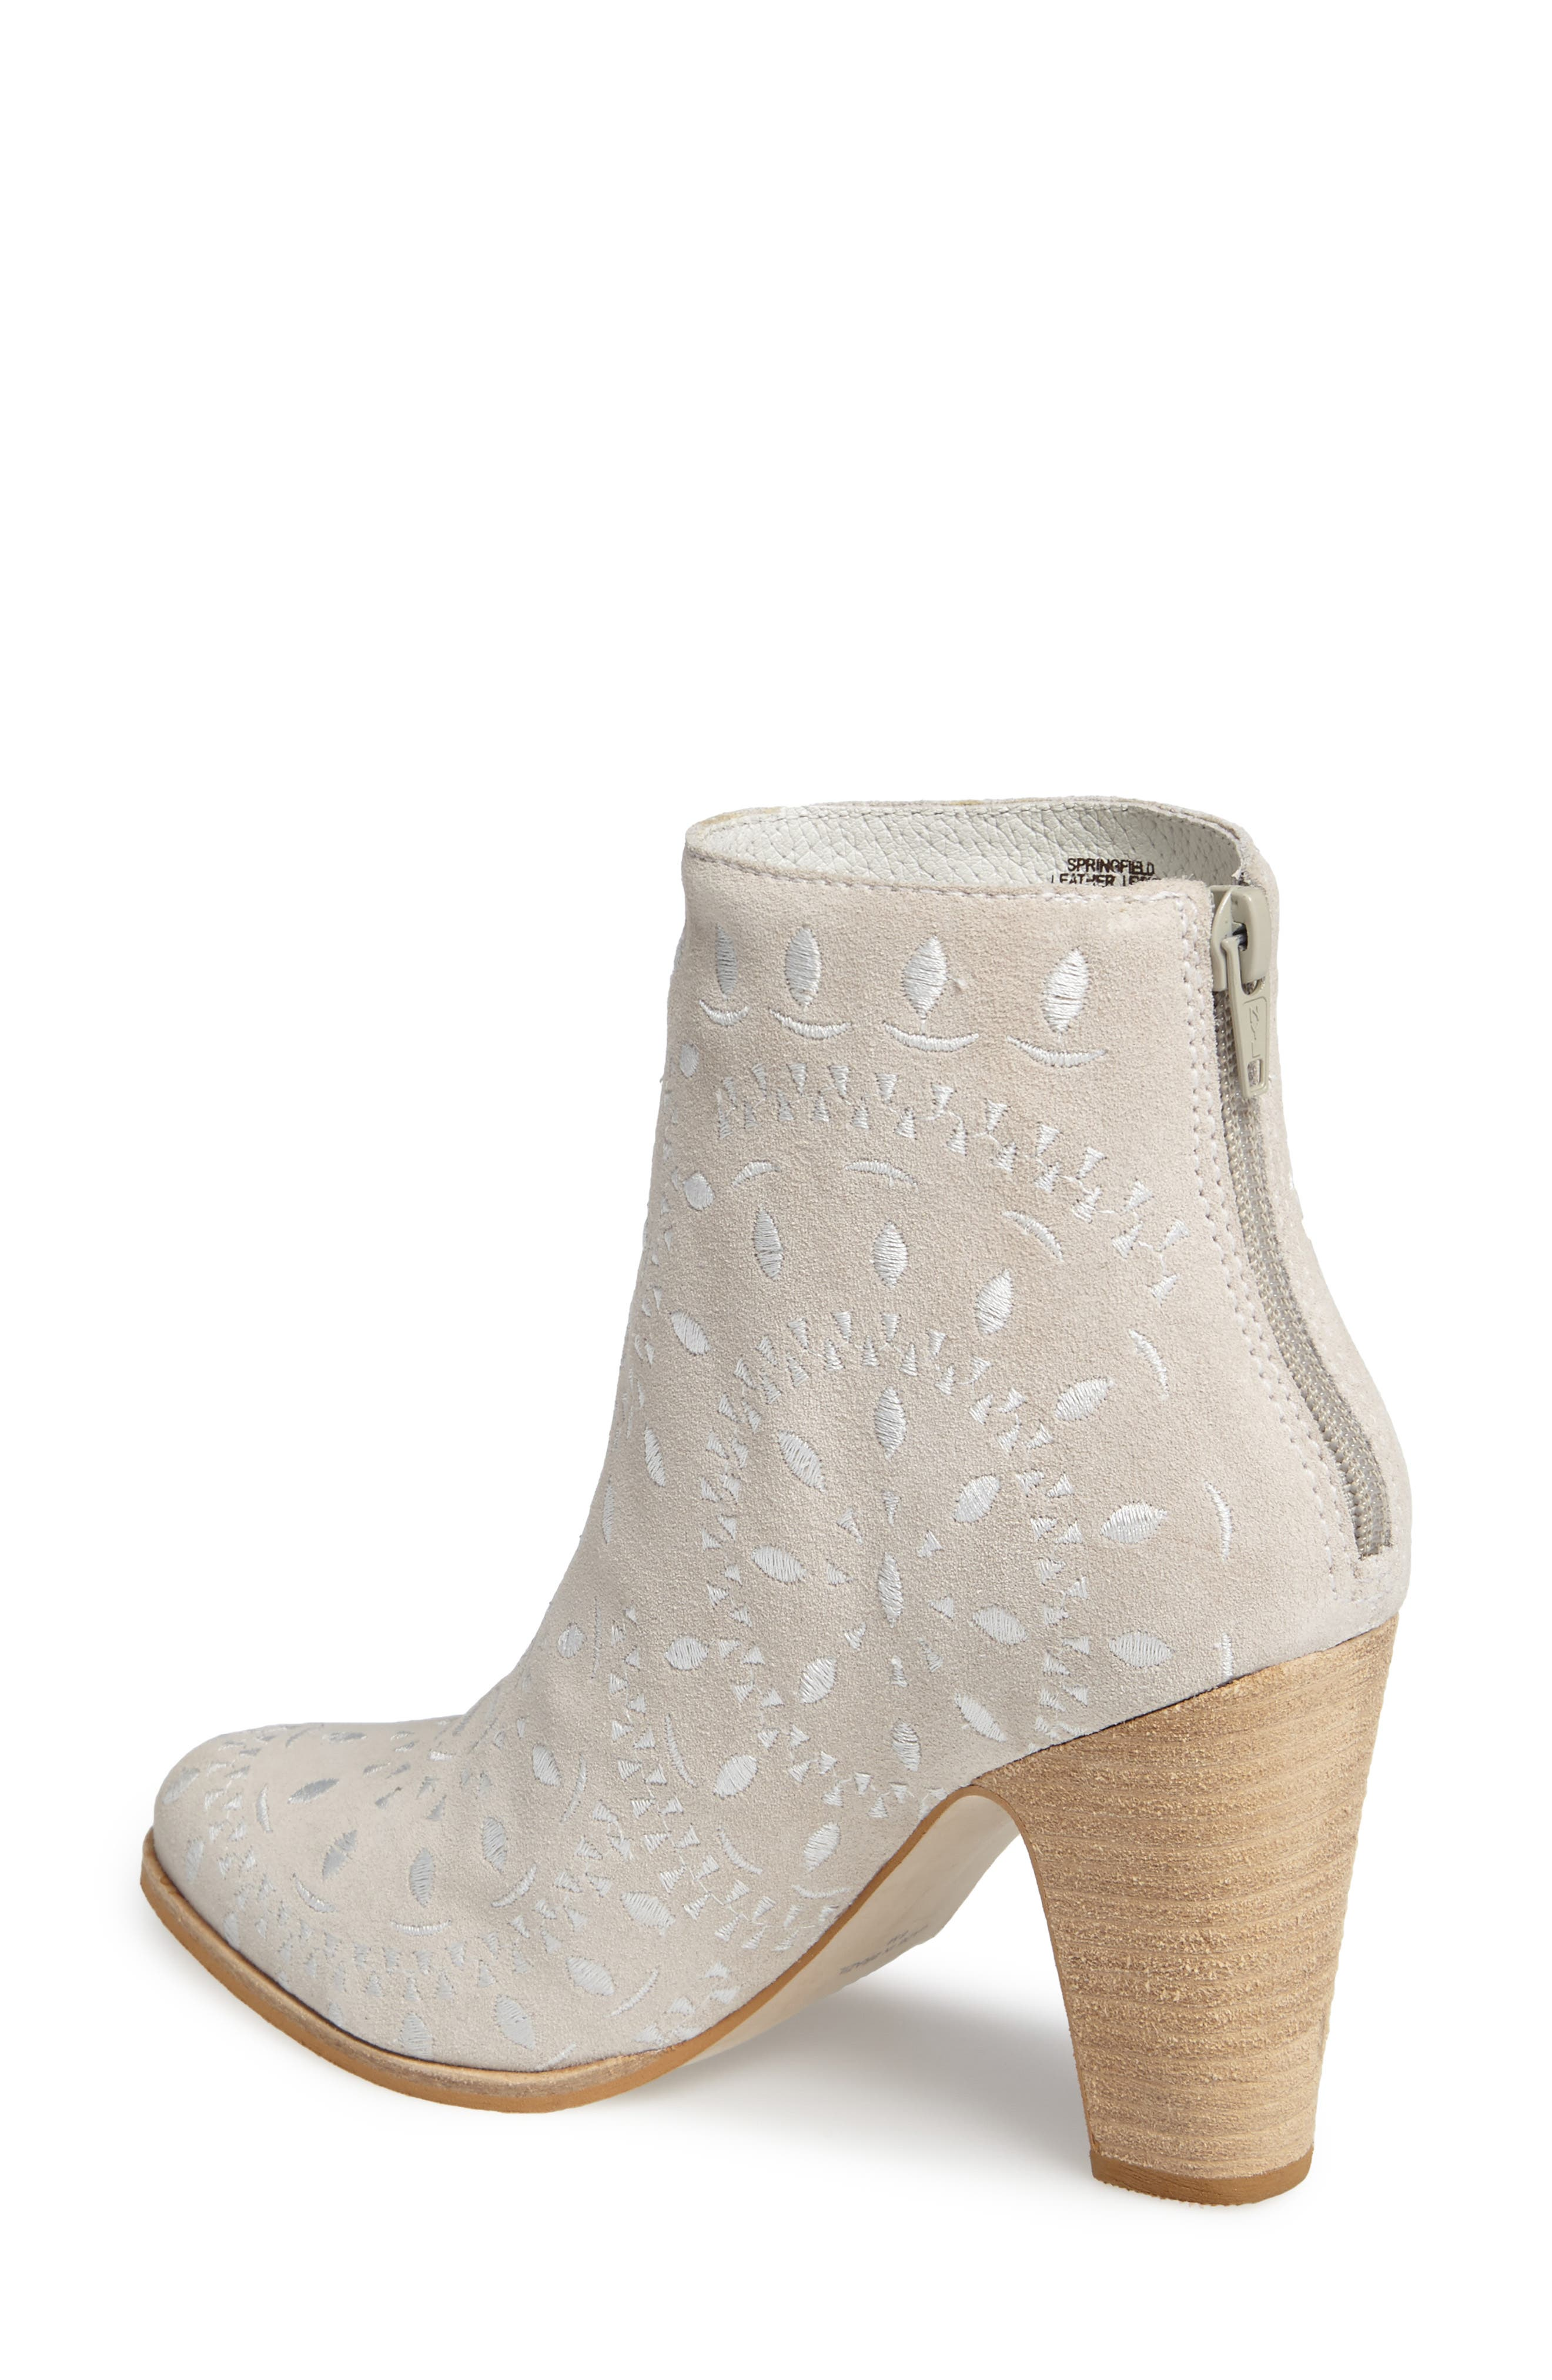 Springfield Bootie,                             Alternate thumbnail 2, color,                             Ivory Suede